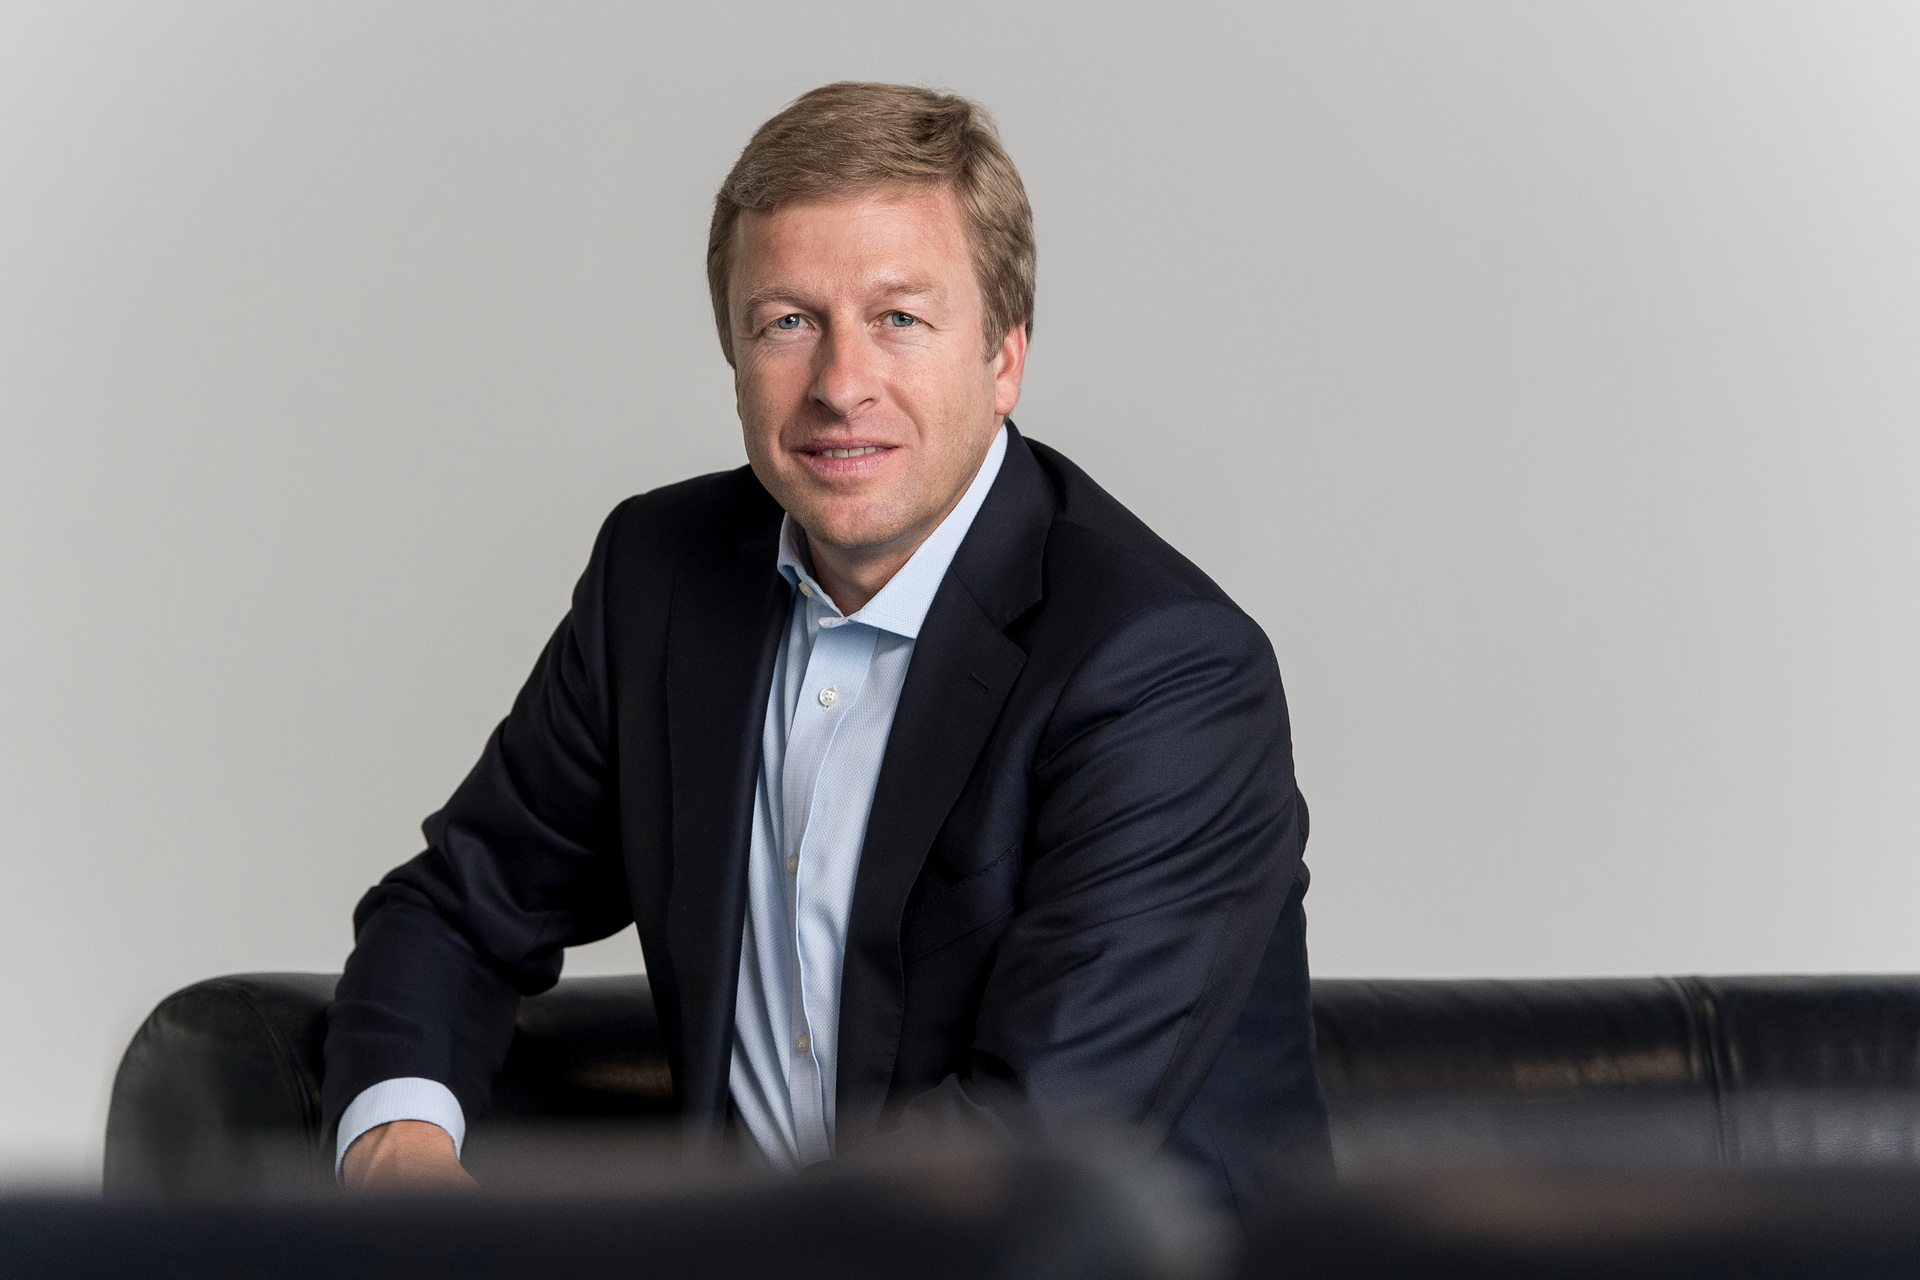 If there is a gap, someone will always fill it. When former BMW CEO Harald Krueger told the supervisory board in early July that he felt like retiring from his position, the company did not object. Instead, a search for the new candidate begun.